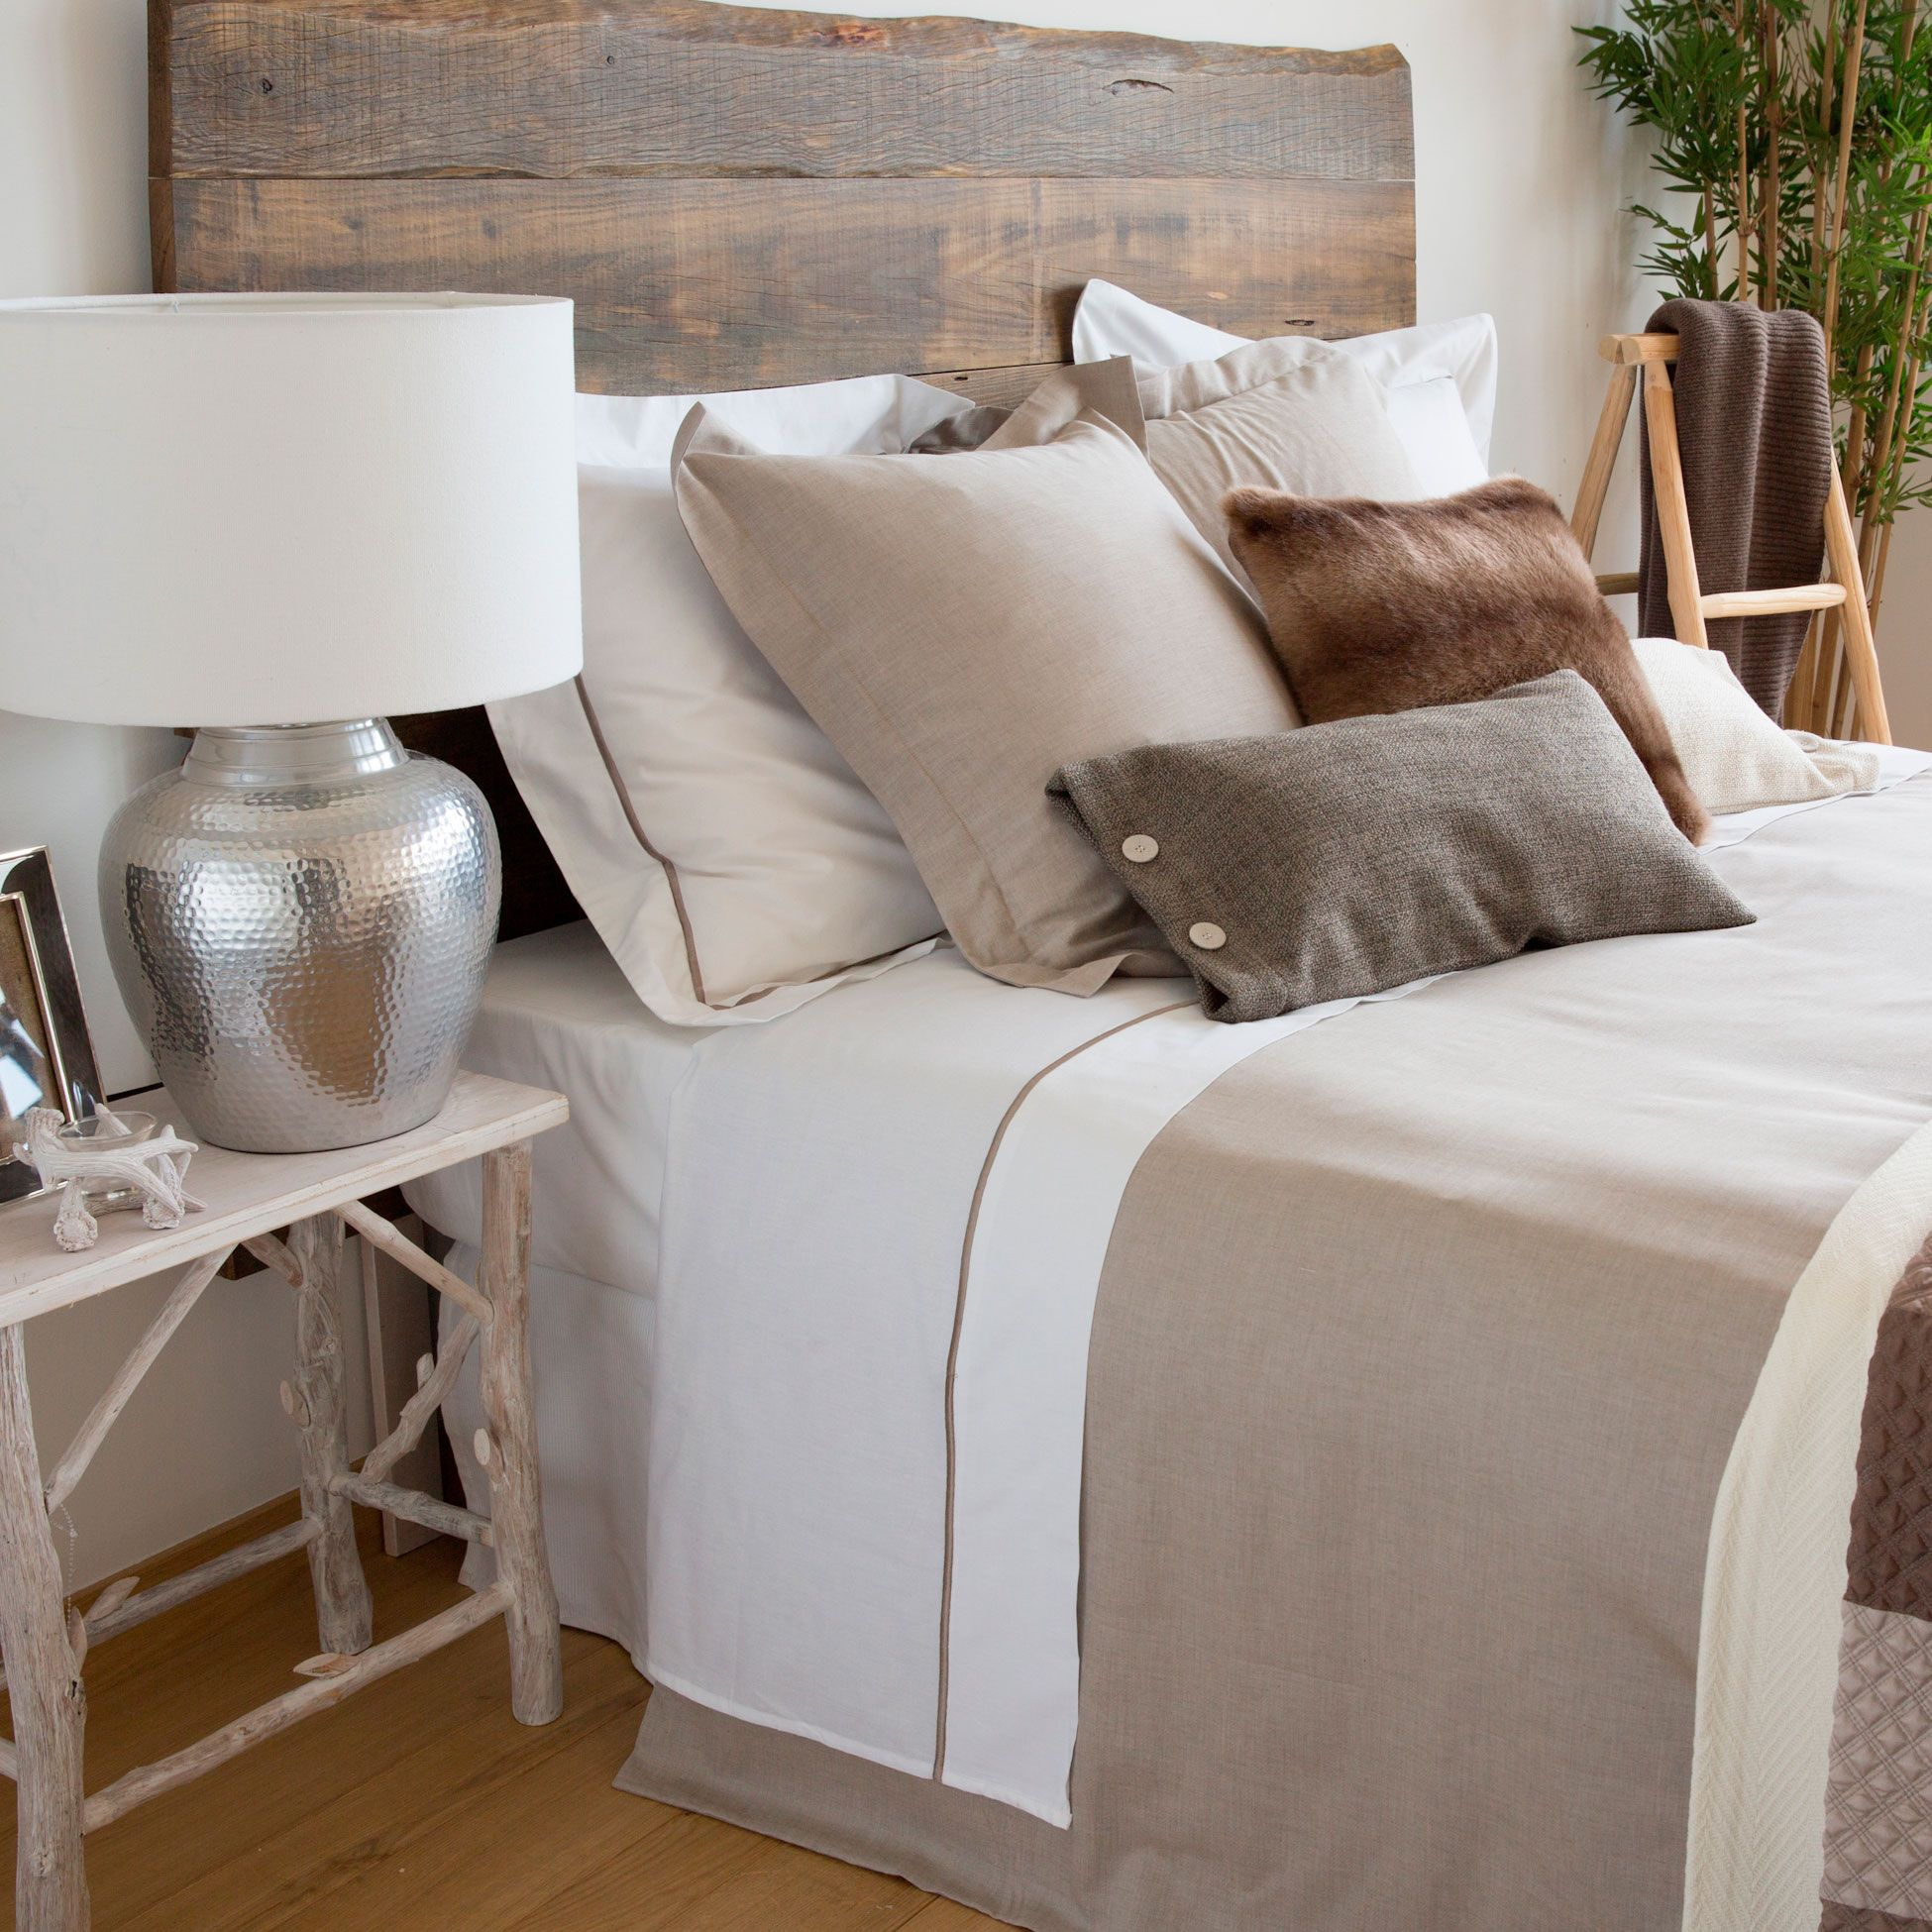 Pin de michael su en zarahome pinterest zara camas y for Decoracion de camas zara home